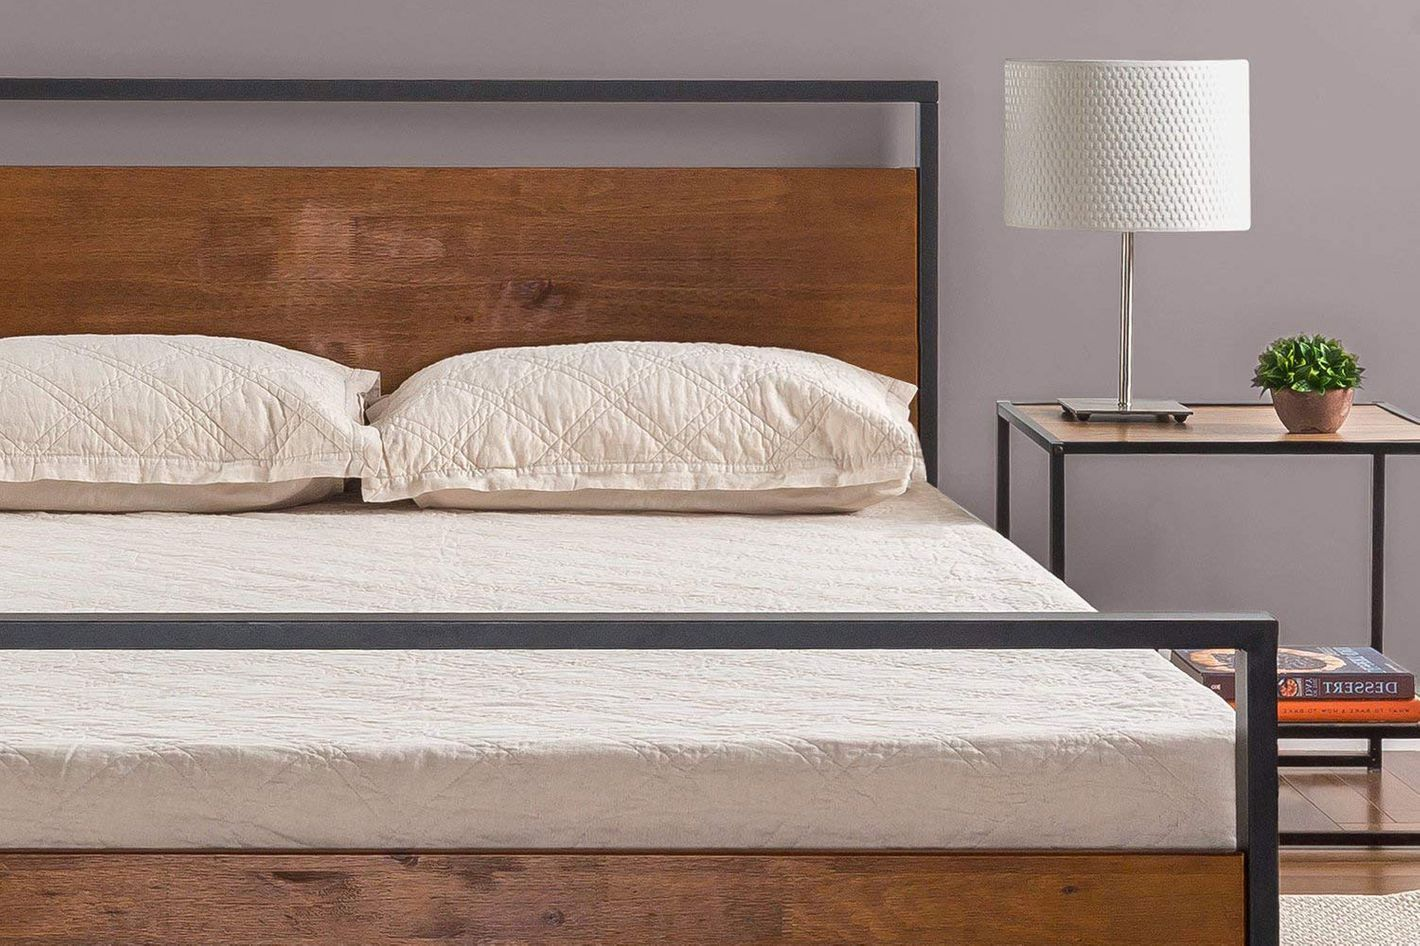 Zinus ironline metal and wood platform bed with headboard and footboard queen